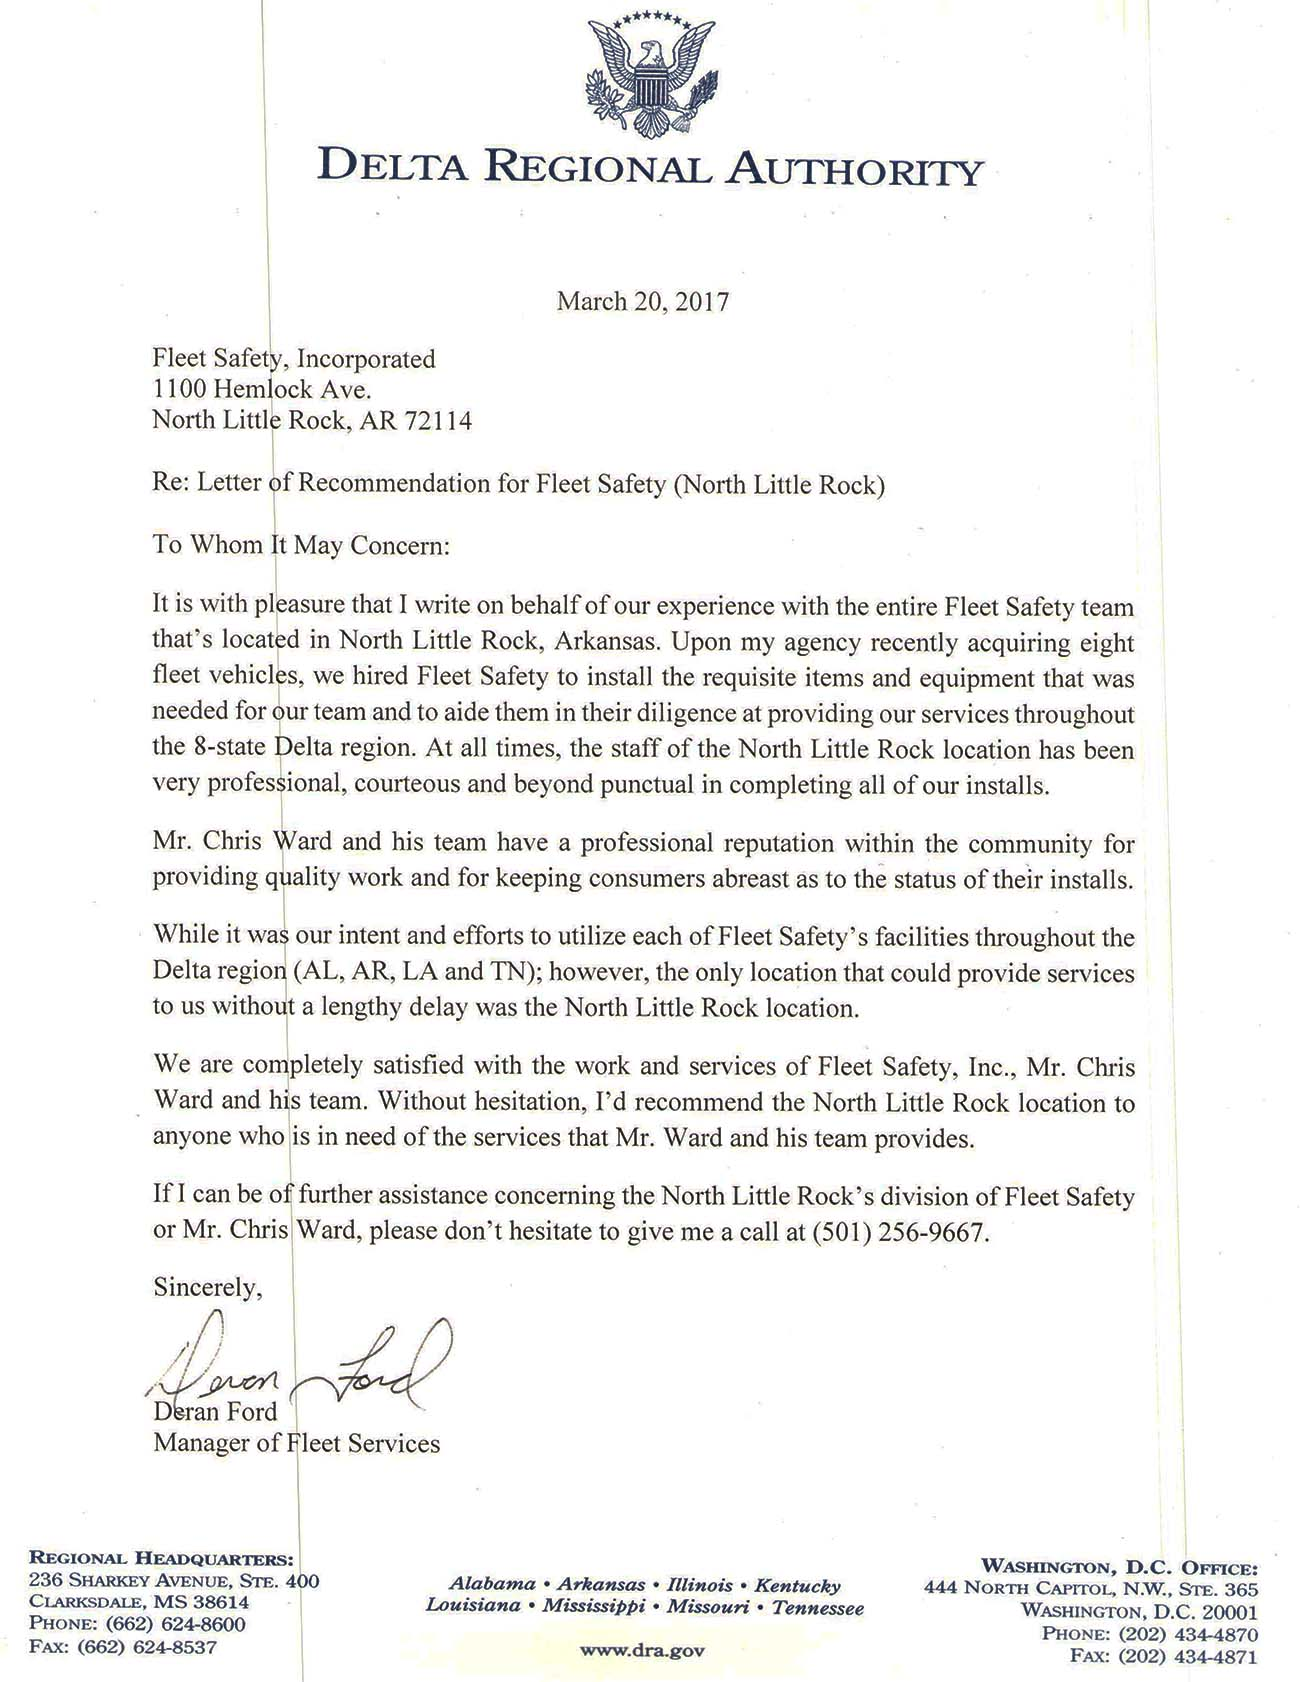 delta-regional-authority-letter-2.jpg